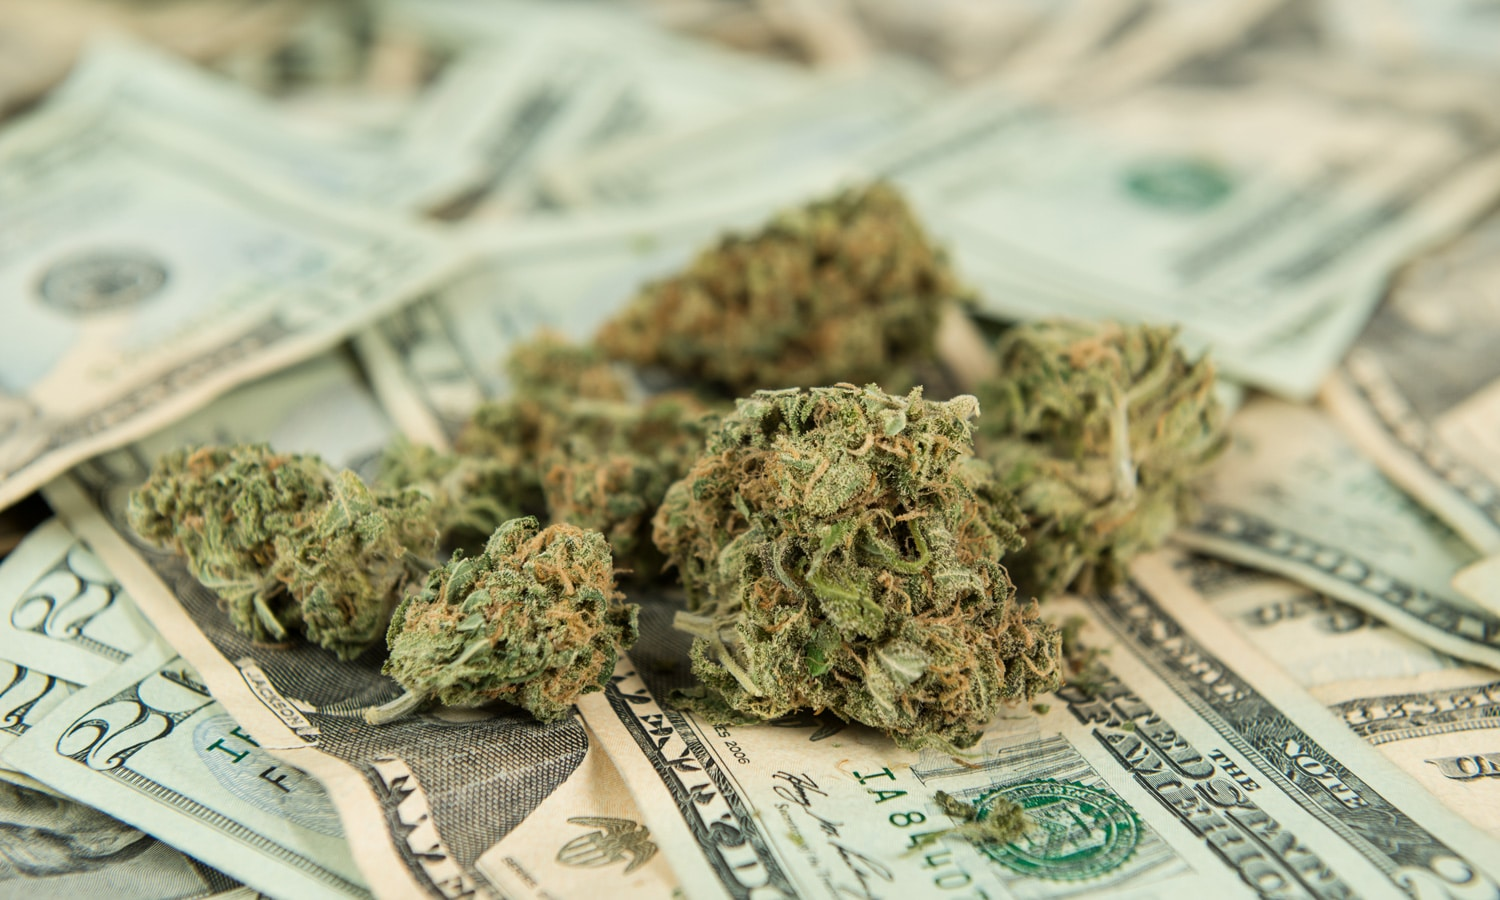 When It Comes To Cannabis Tax, Here Are The States That Win